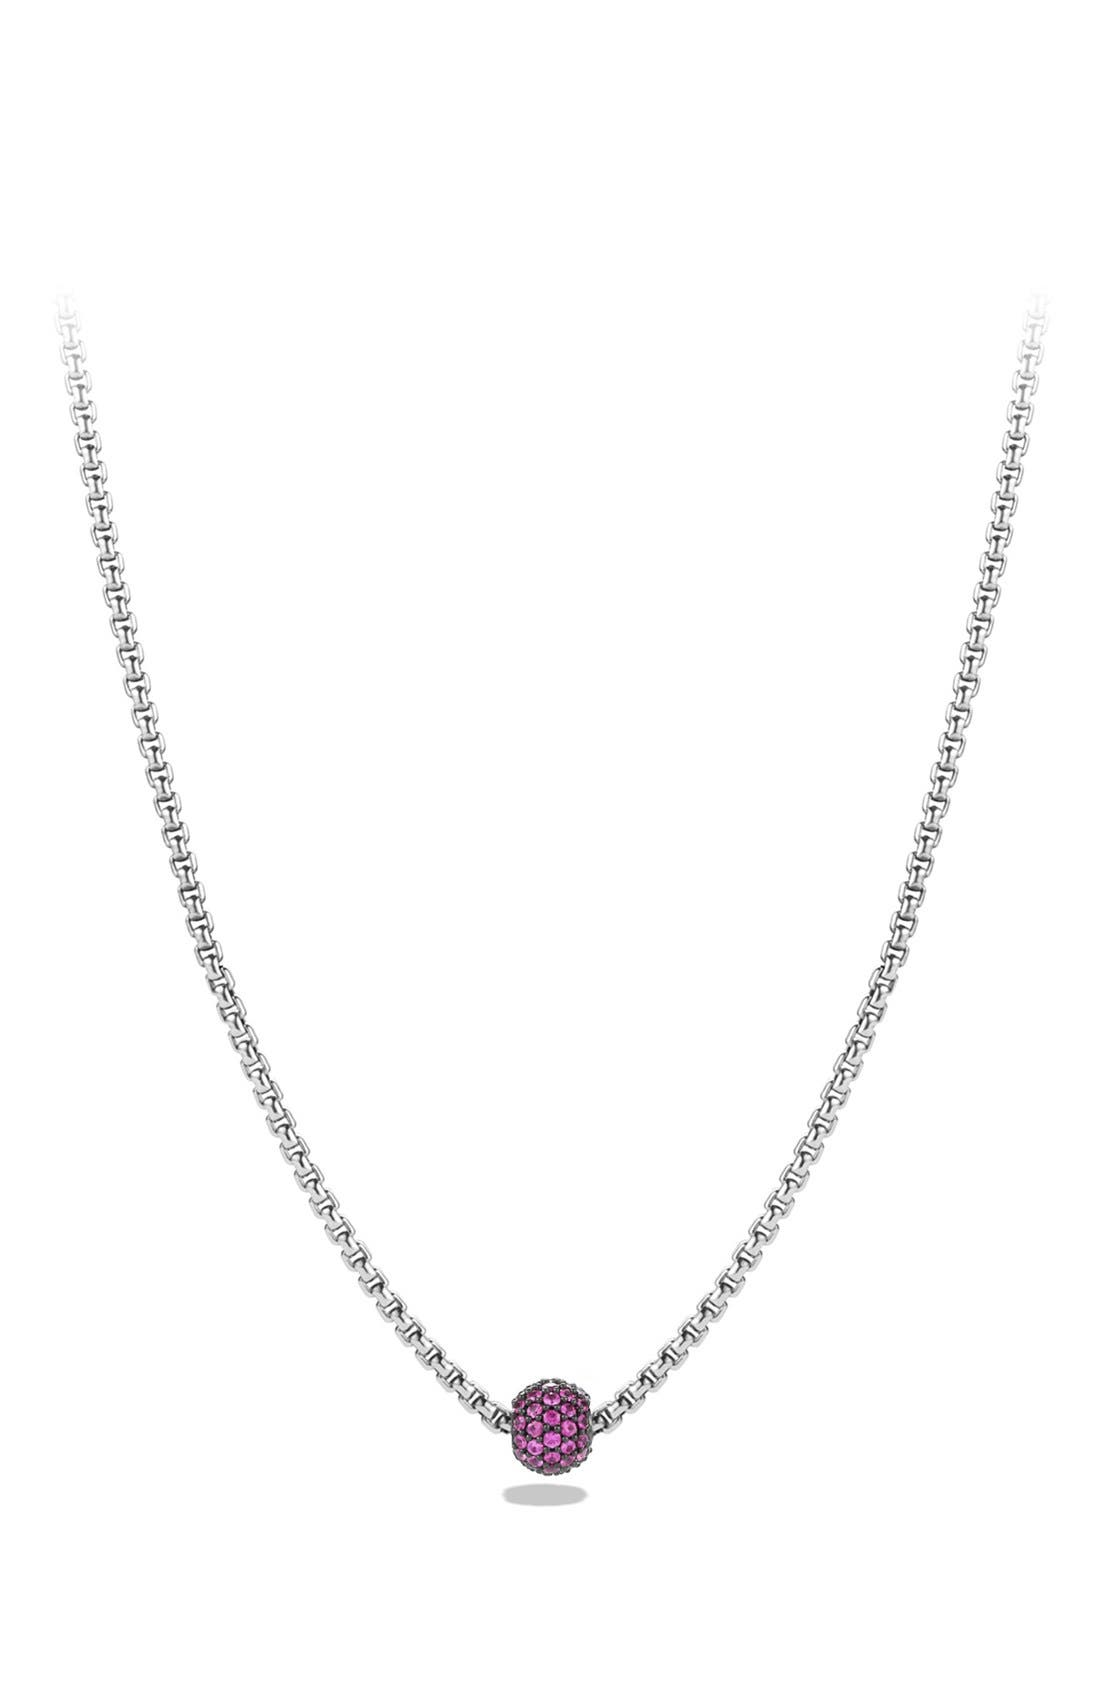 DAVID YURMAN Metro Petite Pavé Chain Necklace with Sapphires